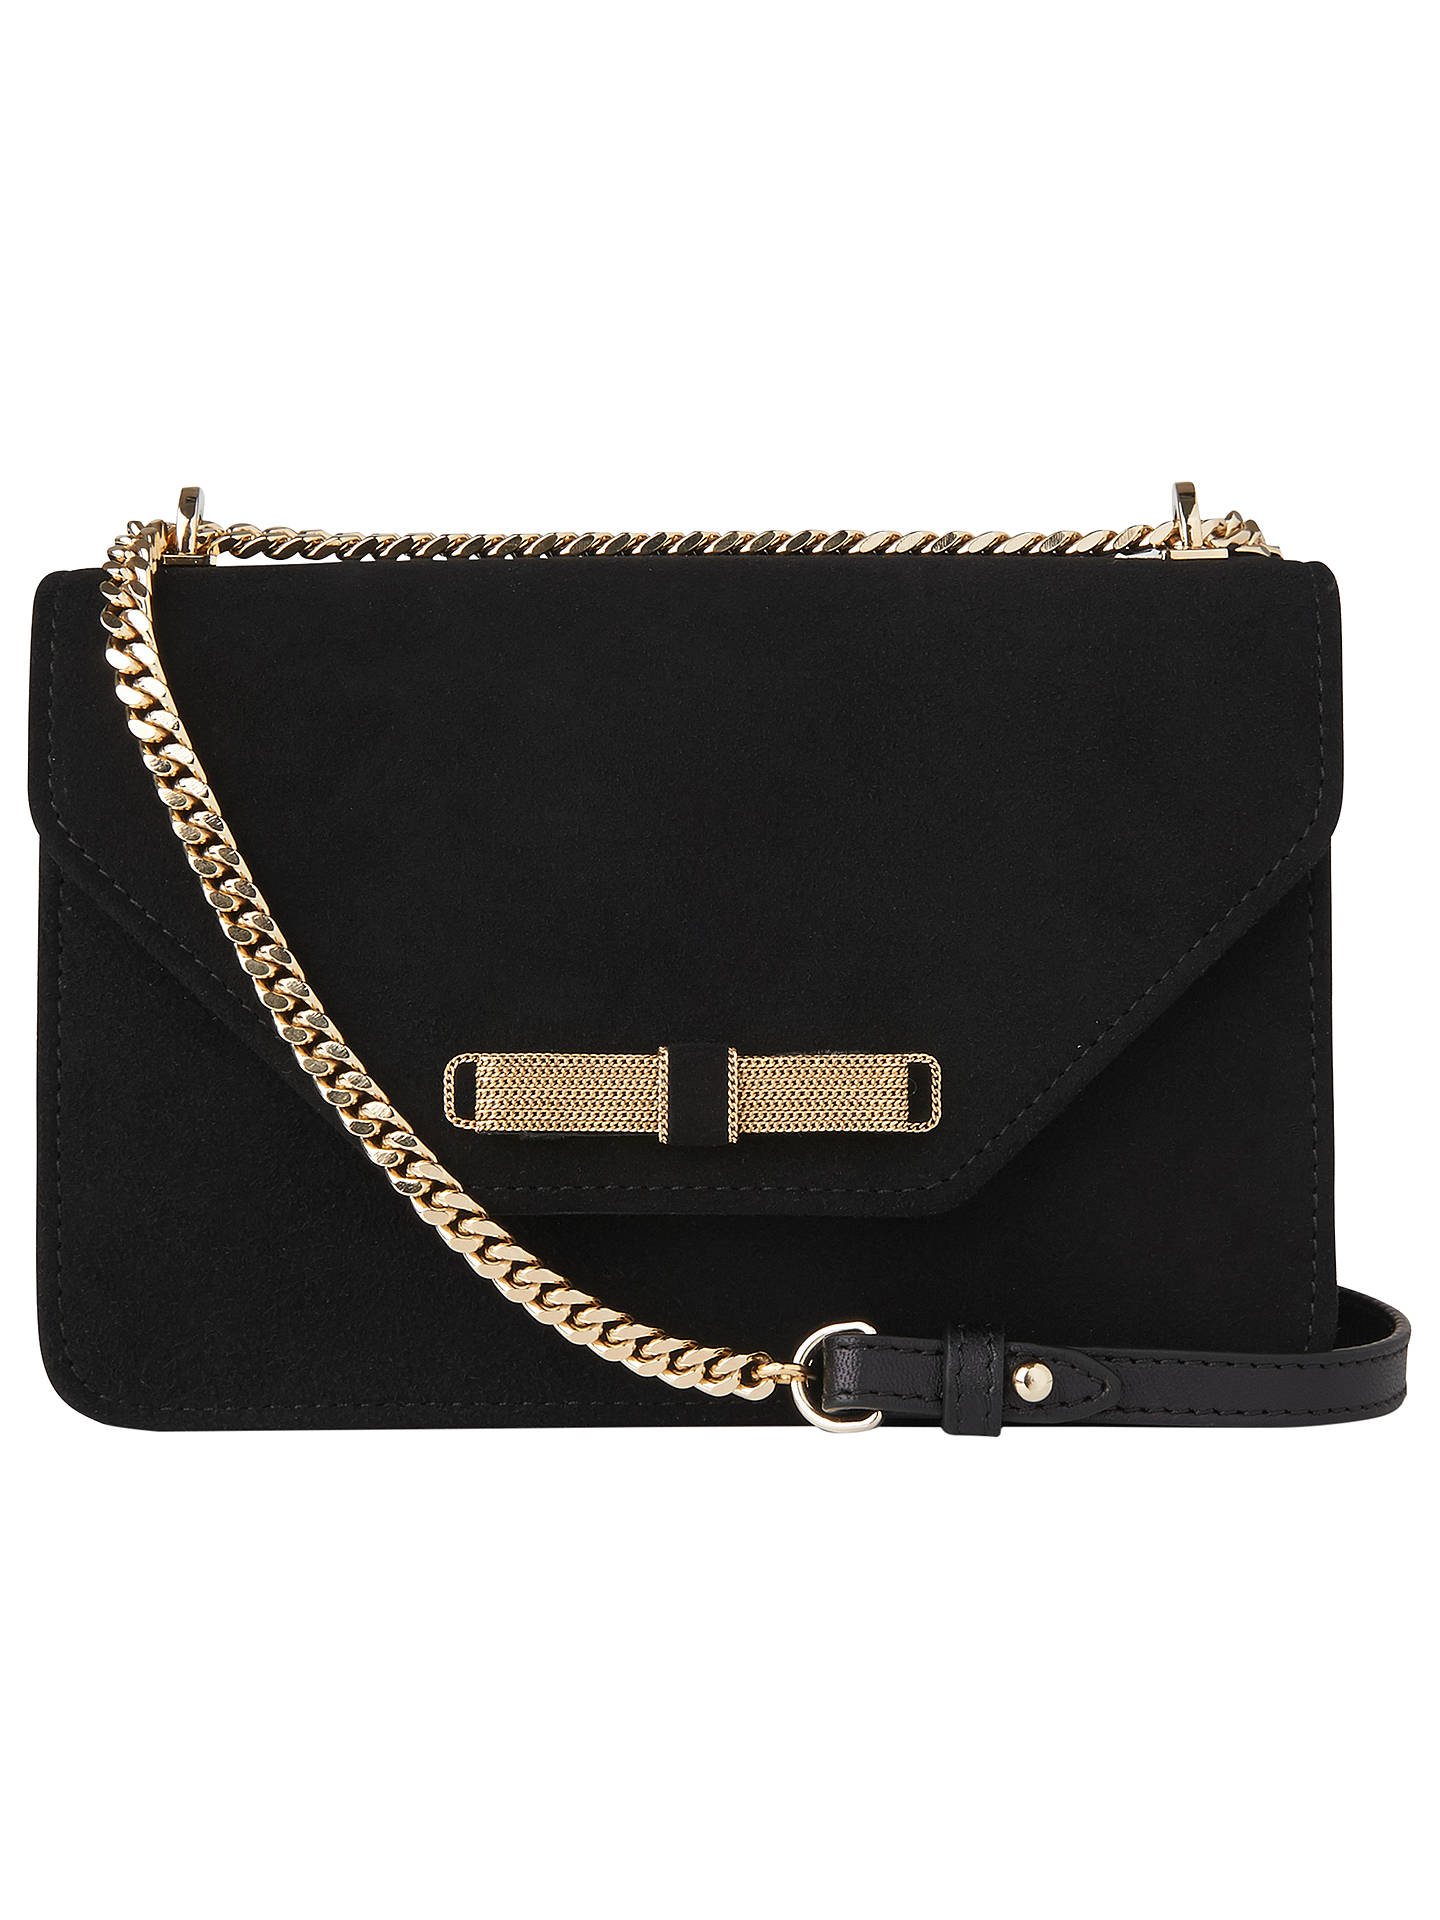 K Bennett Karla Suede Shoulder Bag Black Online At Johnlewis